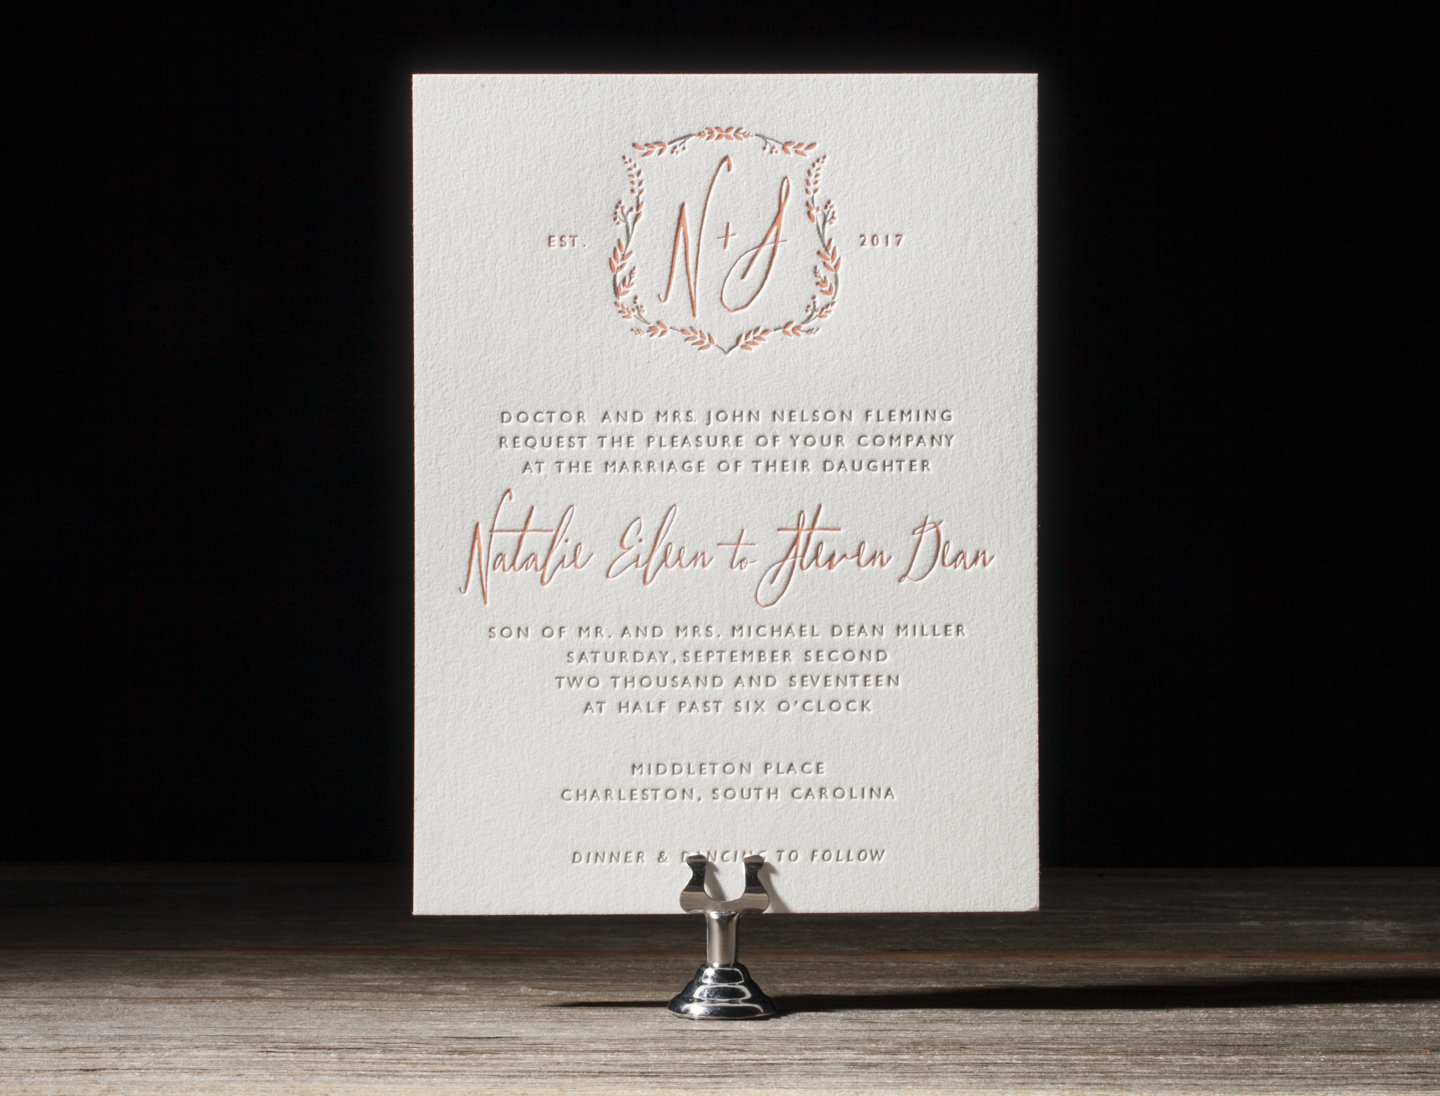 Wreath Crest Letterpress Wedding Stationery from Bella Figura's 2014 Collection